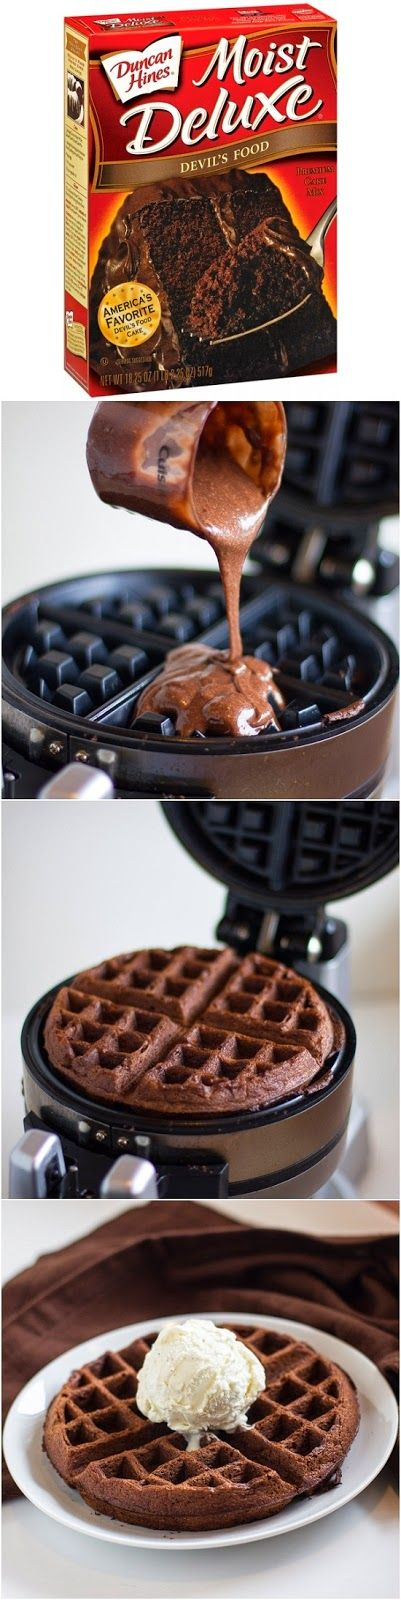 #KatieSheaDesign ♡❤ Cake Mix Waffles are so easy!! Thinking of using these for a kids party with Ice Cream on top YUM!